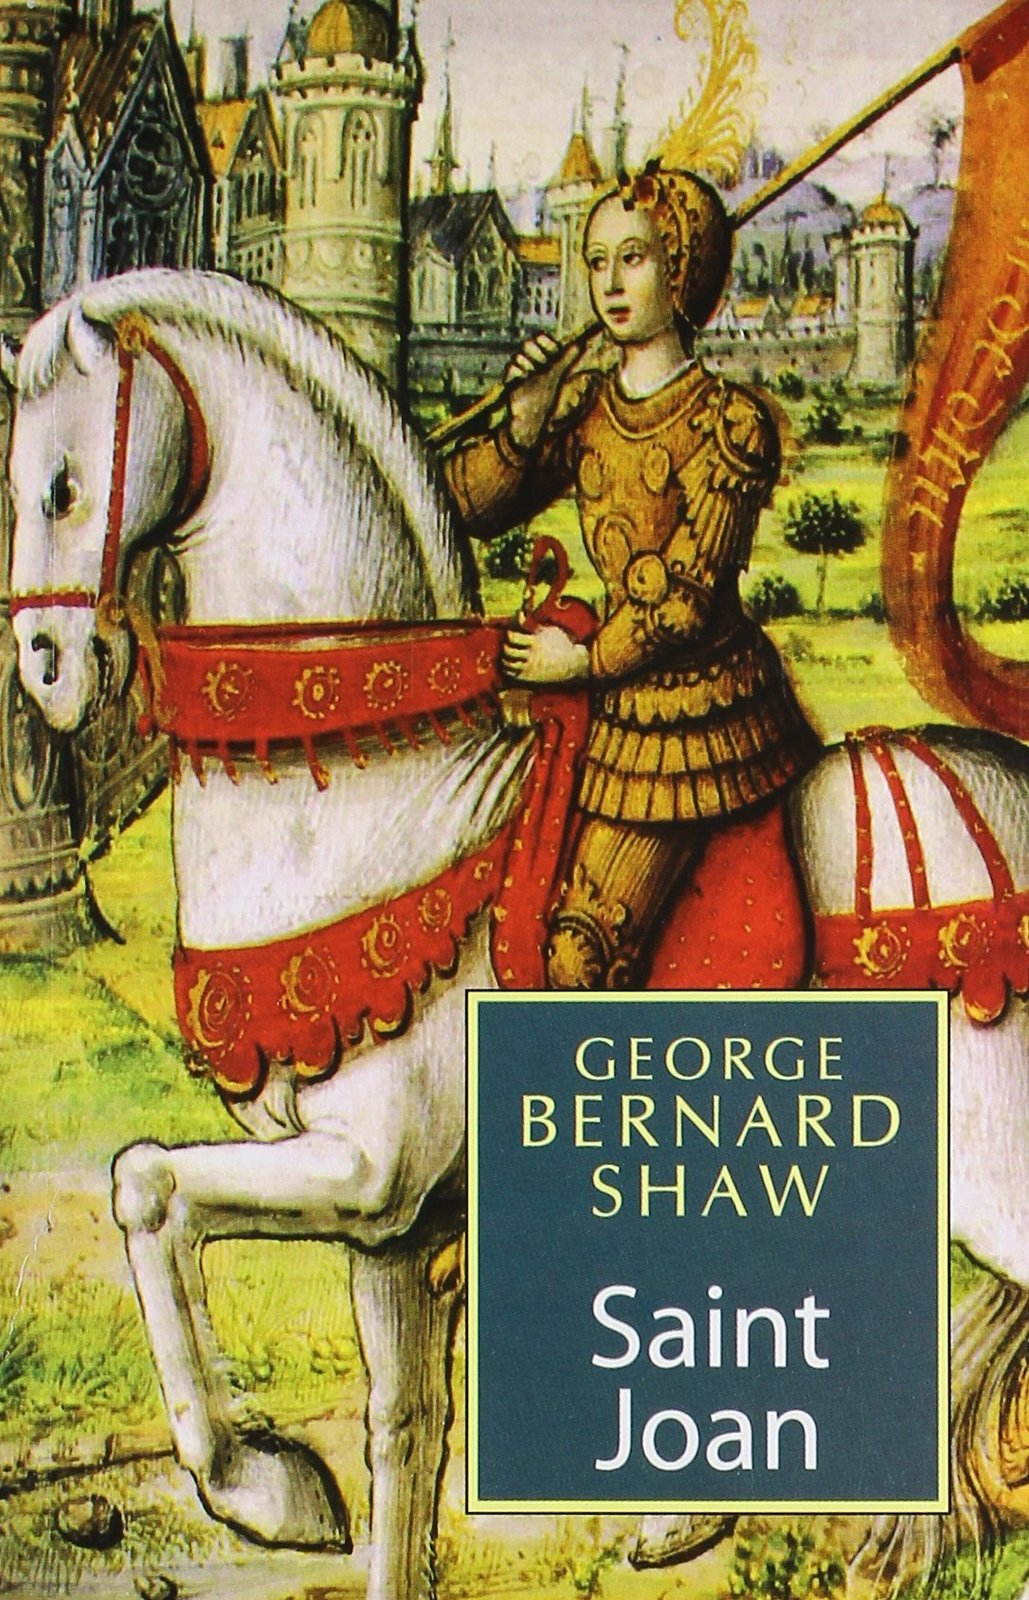 an analysis of saint joan by george bernard shaw